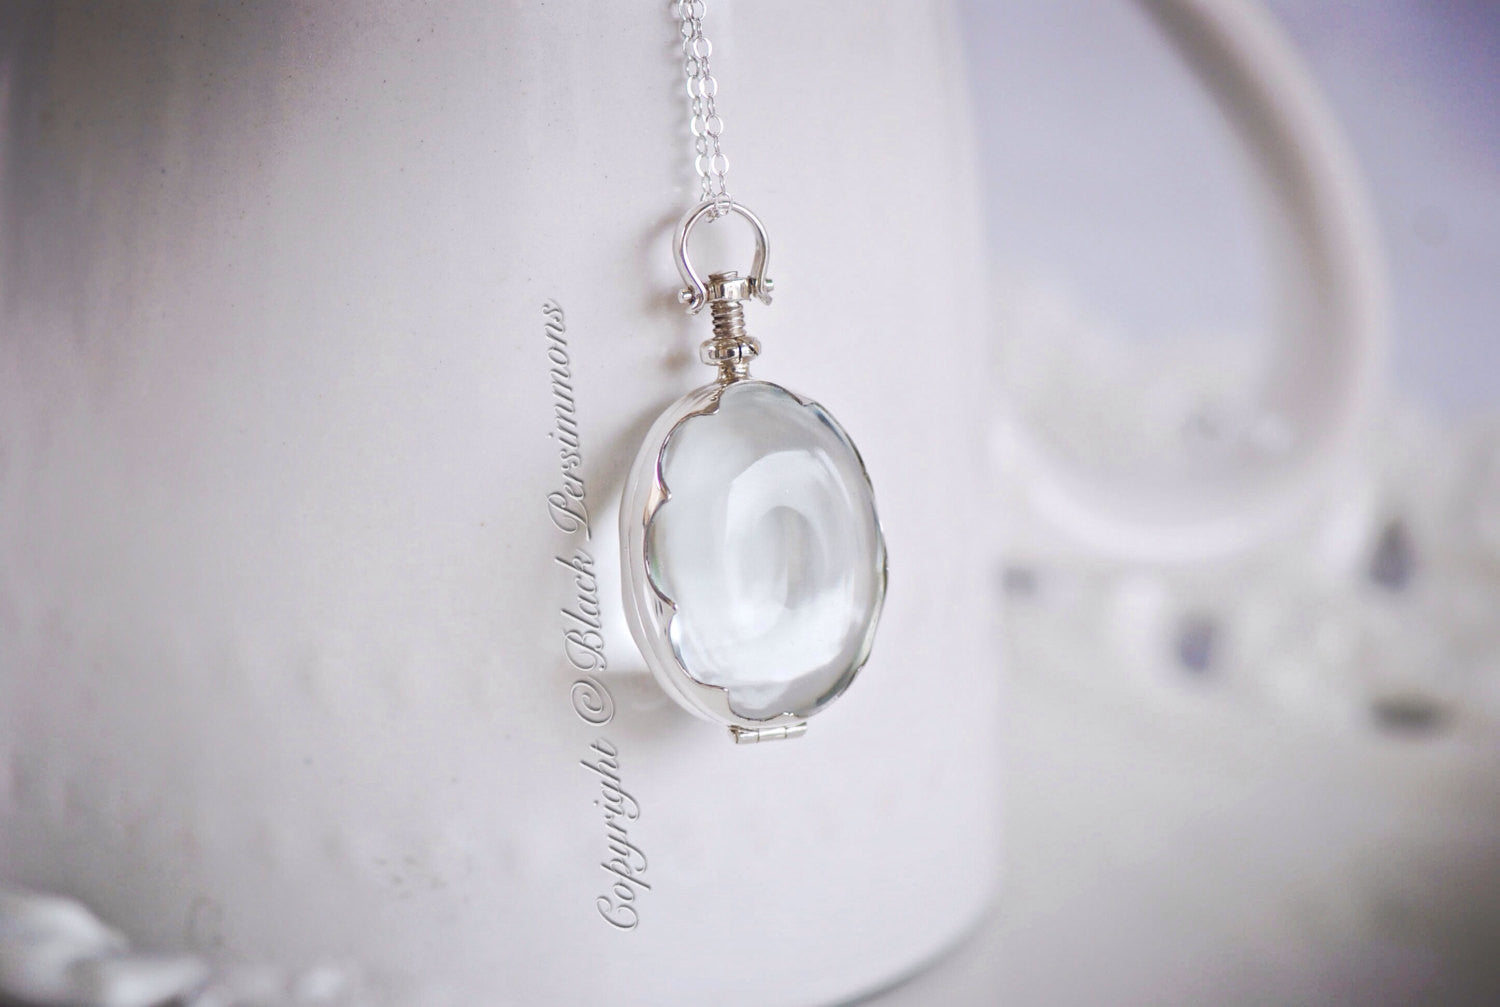 Handcrafted scalloped oval antique glass locket pendant necklace handcrafted scalloped oval antique glass locket pendant necklace solid 925 sterling silver mozeypictures Choice Image